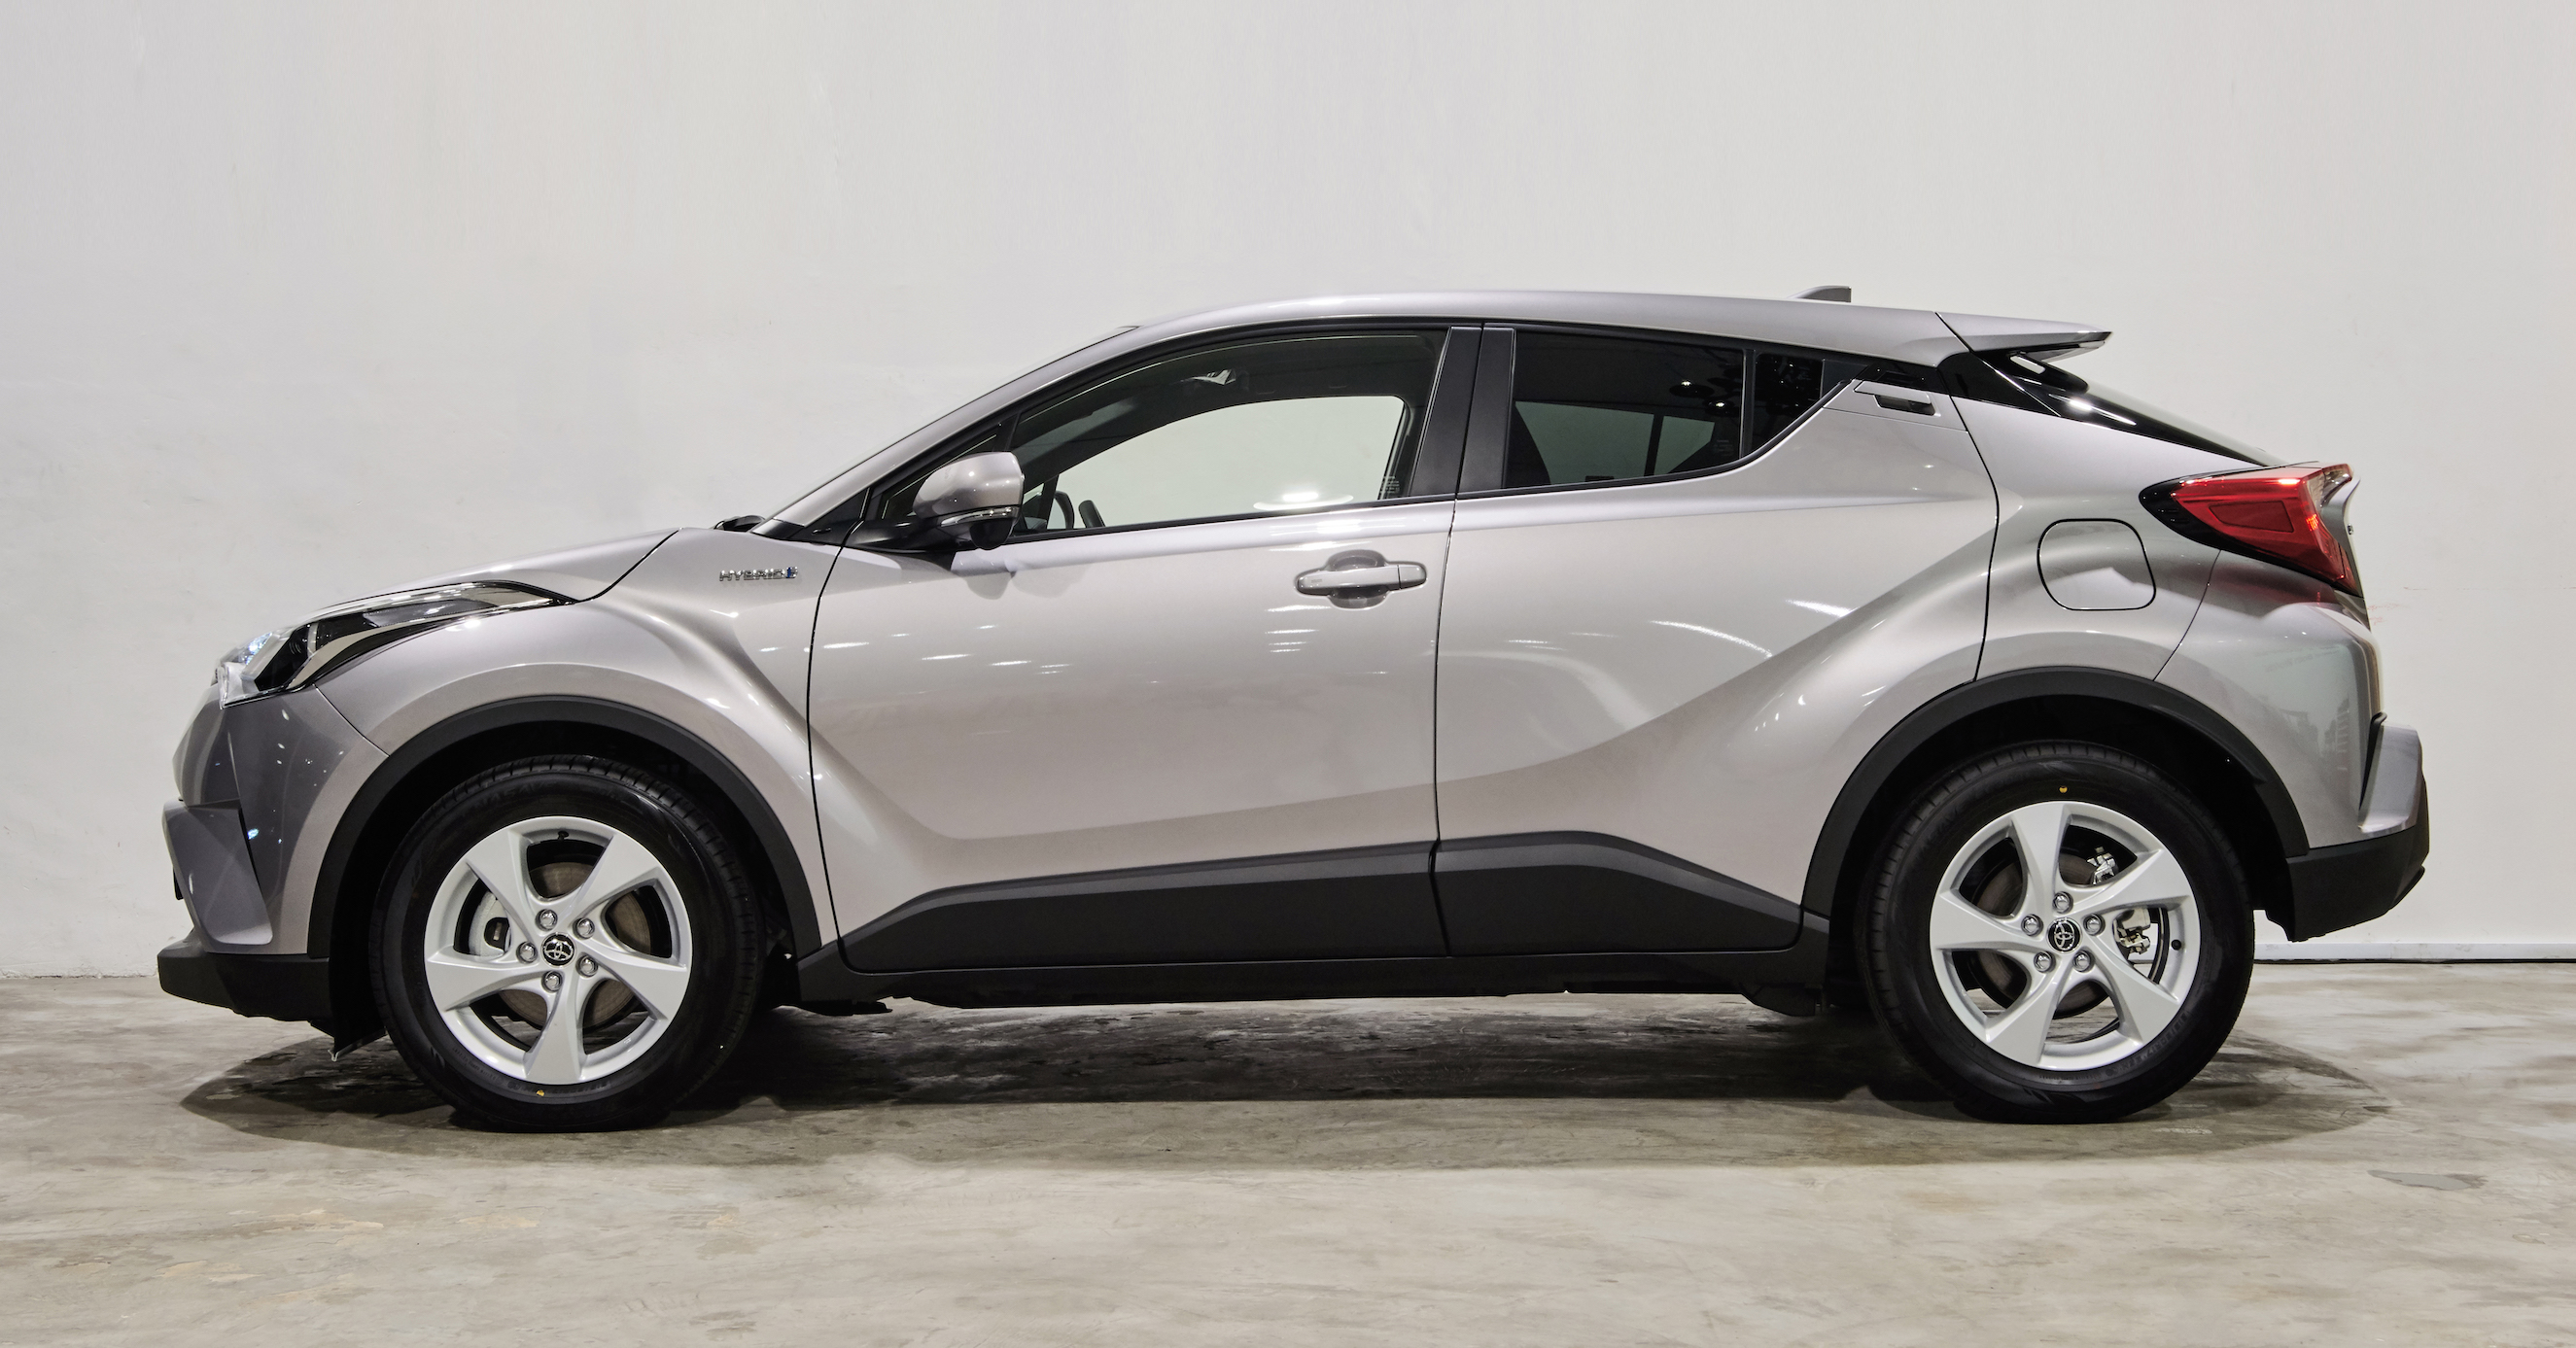 In a world of ordinary, stand out, with the Toyota C-HR's angular dynamic design; powerful performance and agility. The urban SUV range that answers all the questions of the city.